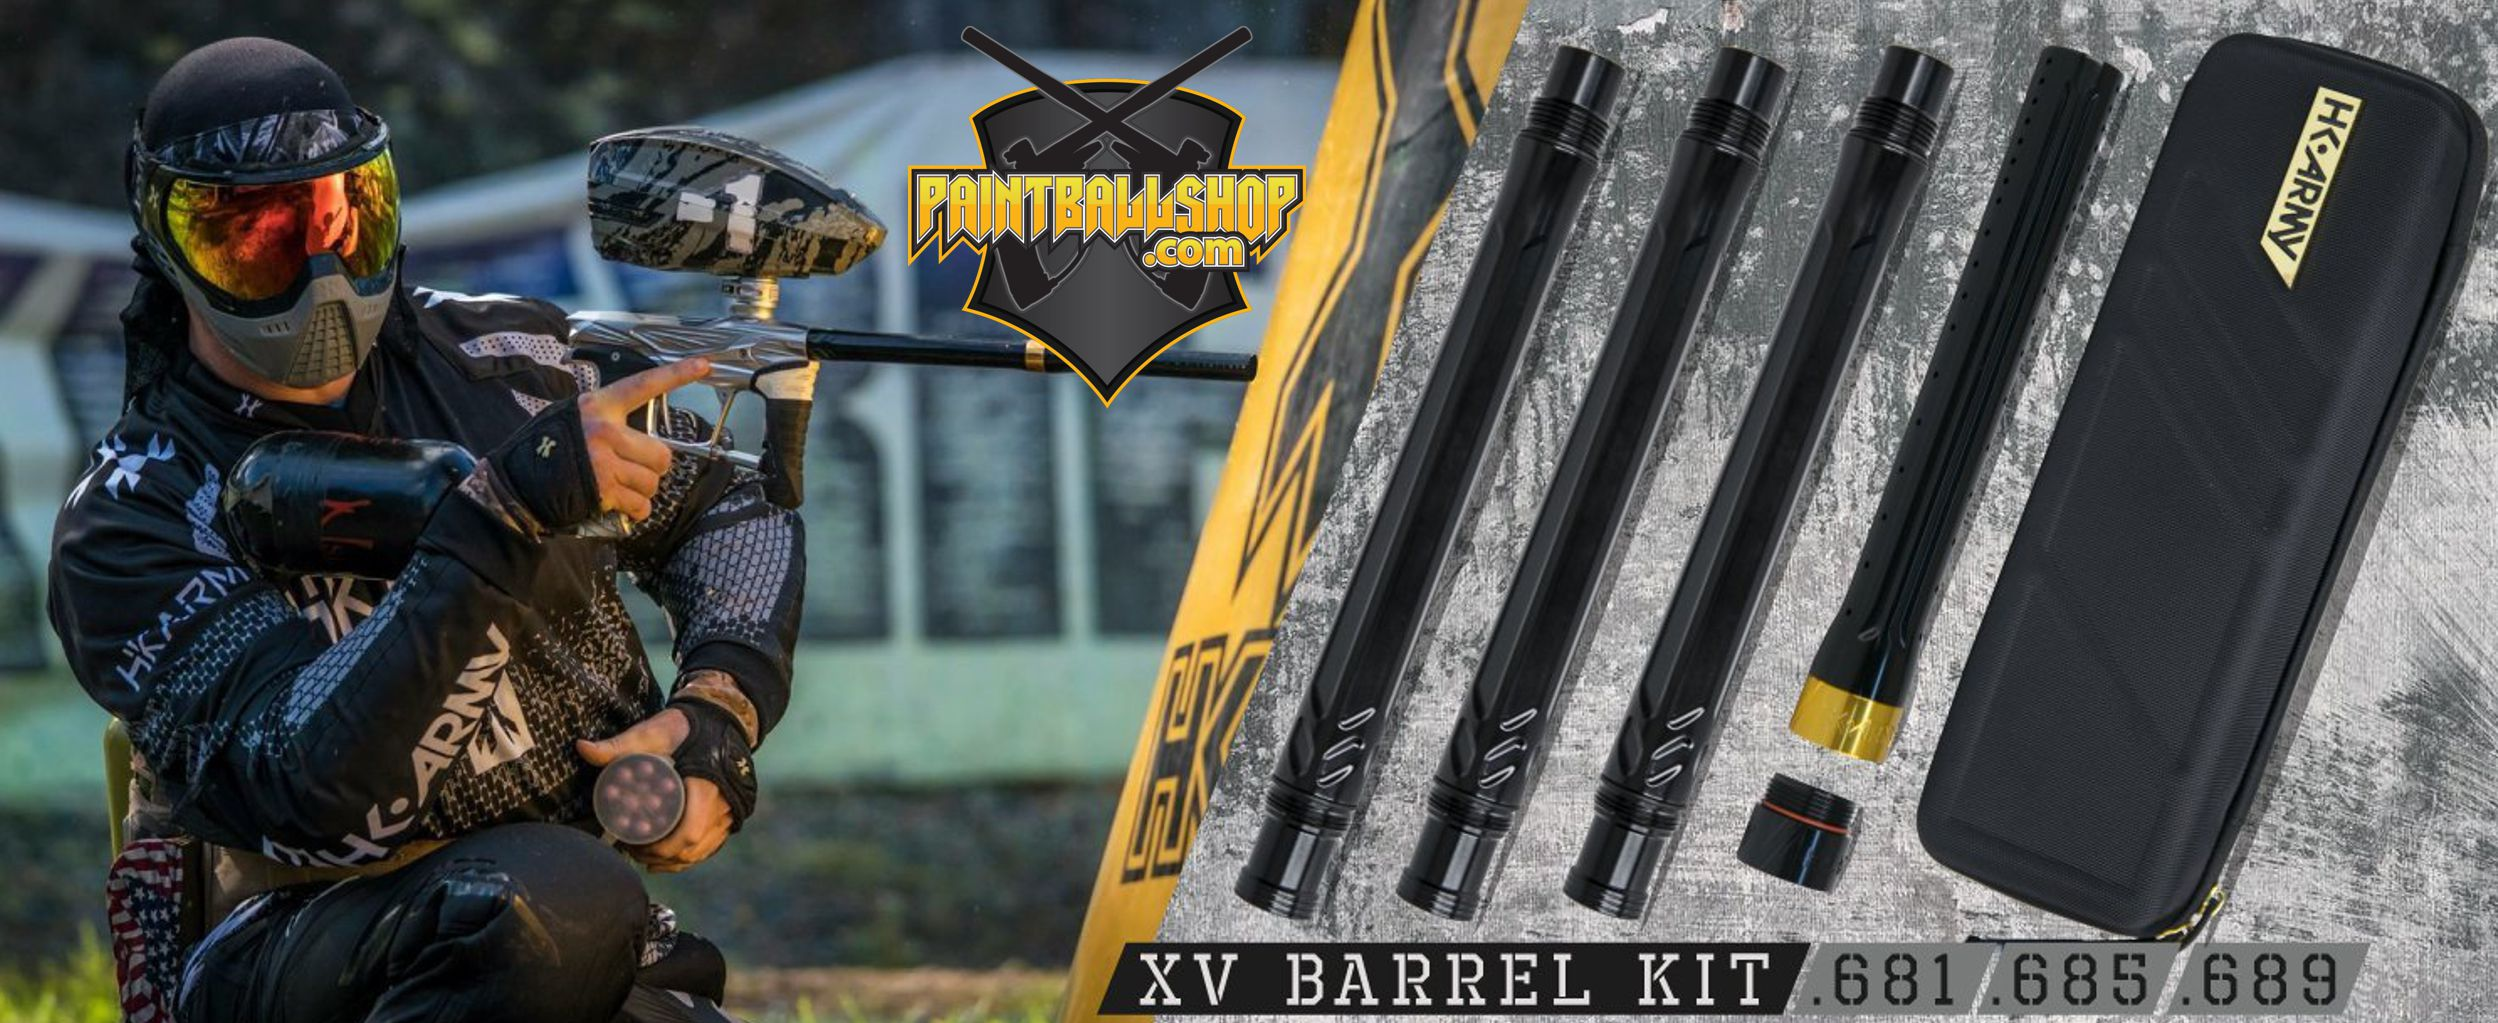 xv-barrel-kit.jpg